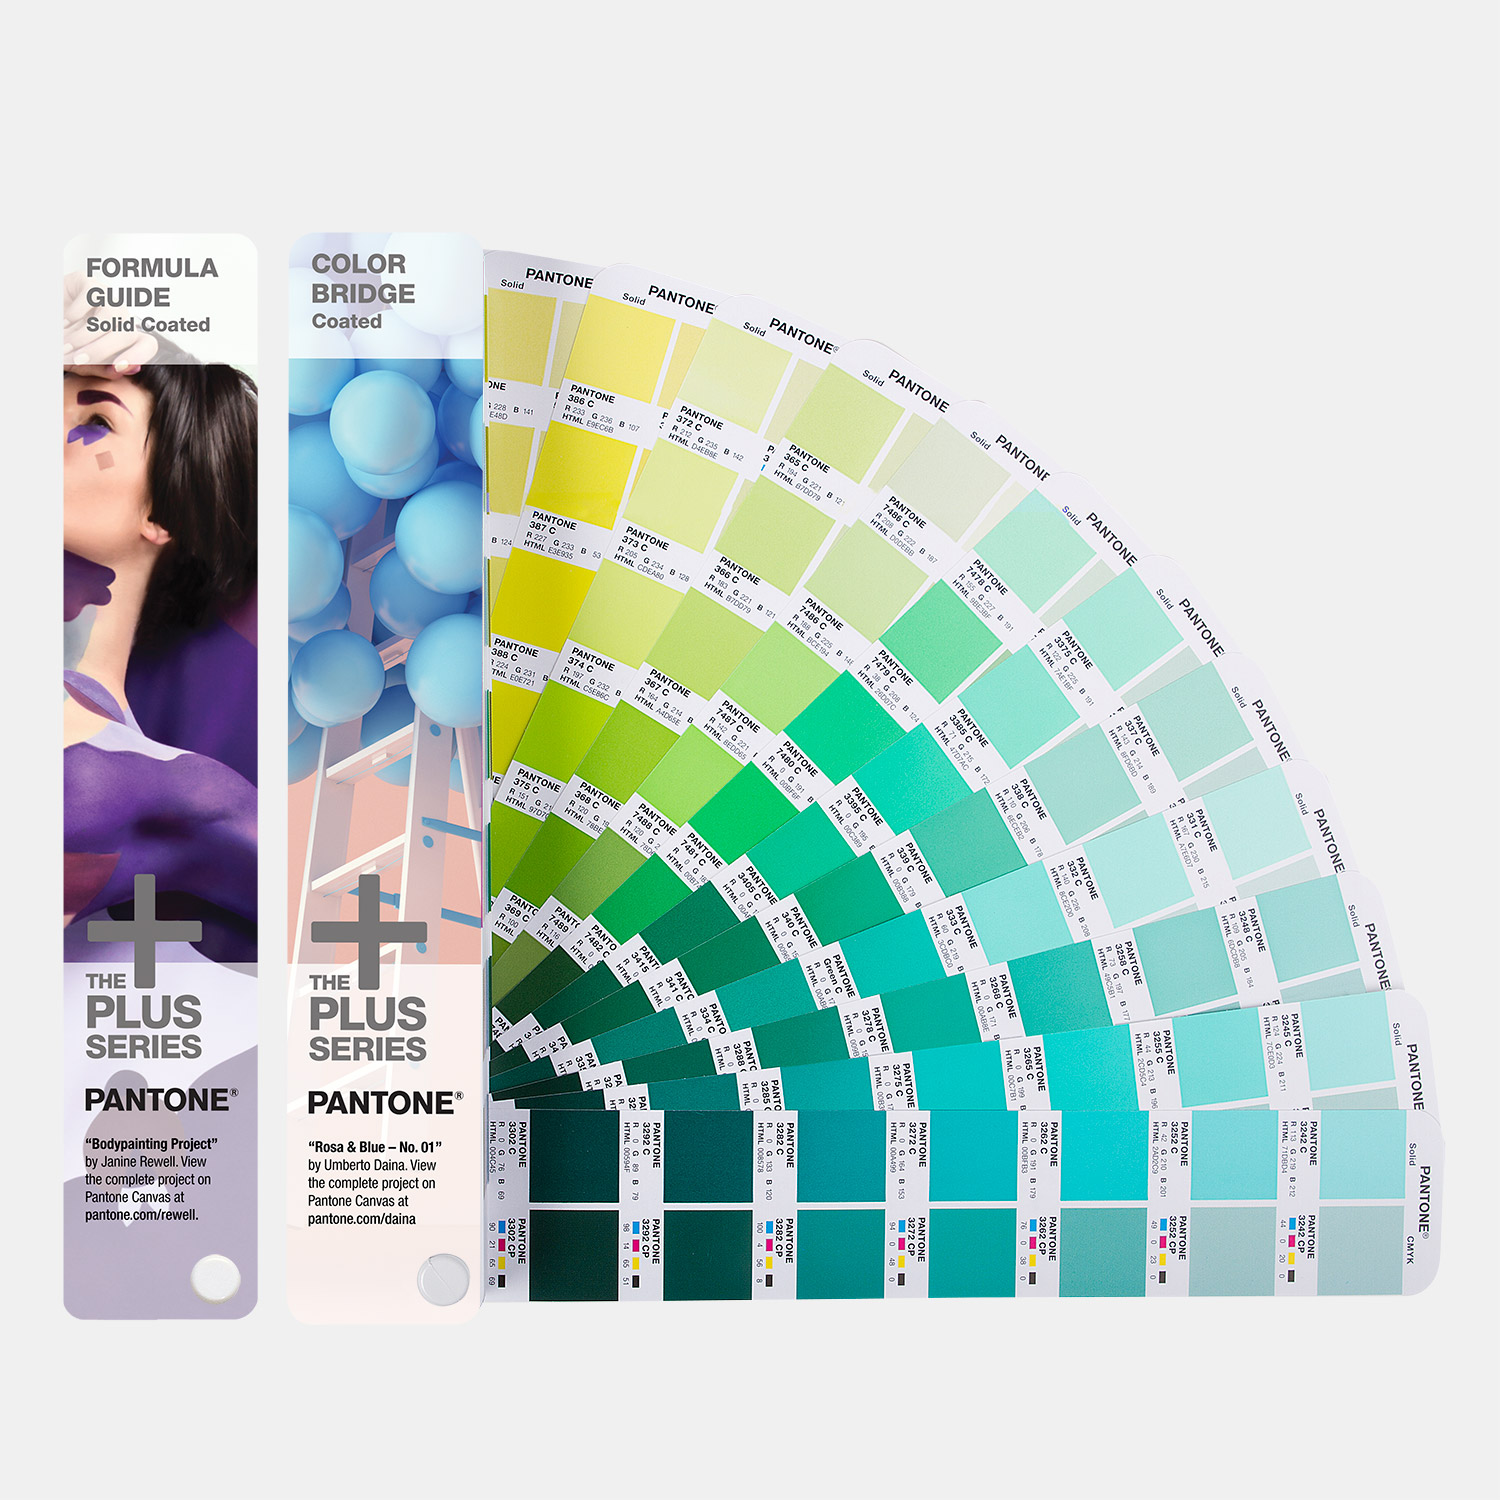 Ral Cmyk Cmyk To Ral Or Pantone Conversion Graphic Design Stack Exchange